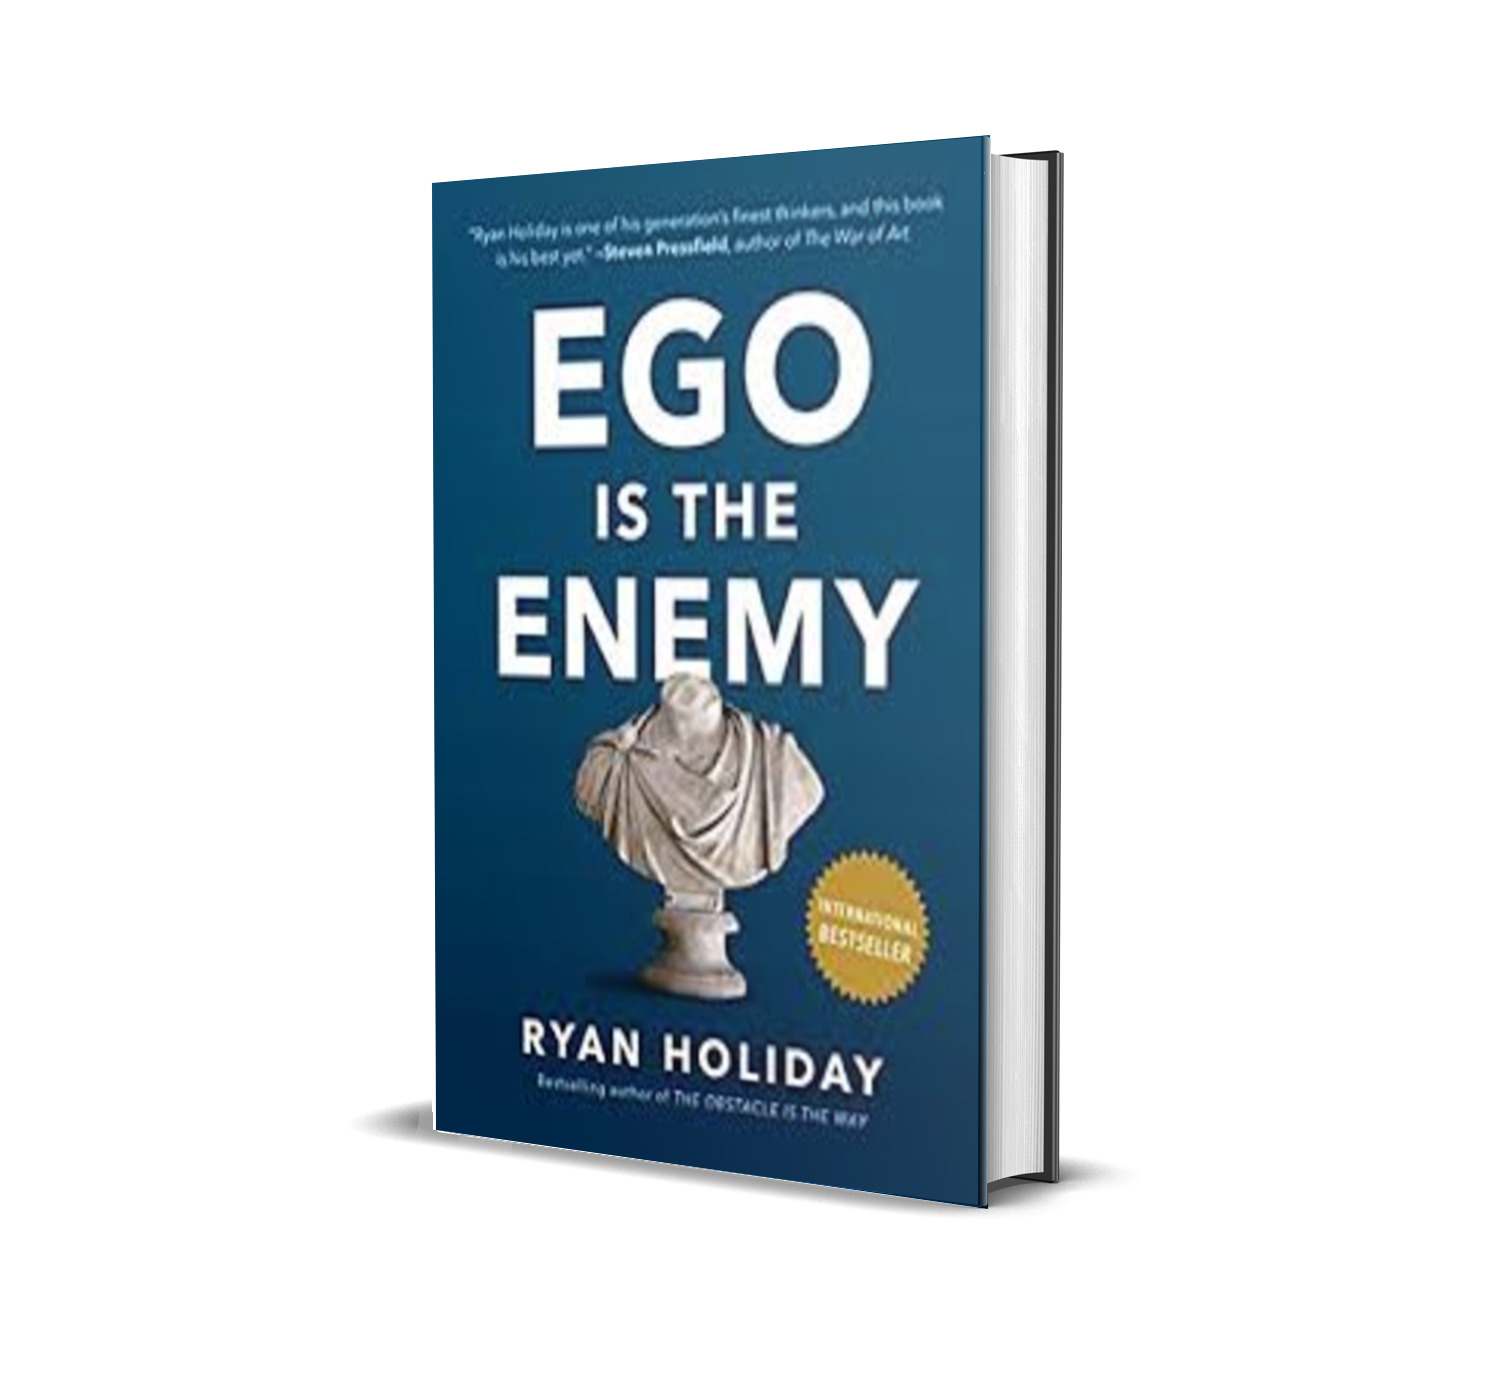 Ego is the enemy- Ryan Holiday